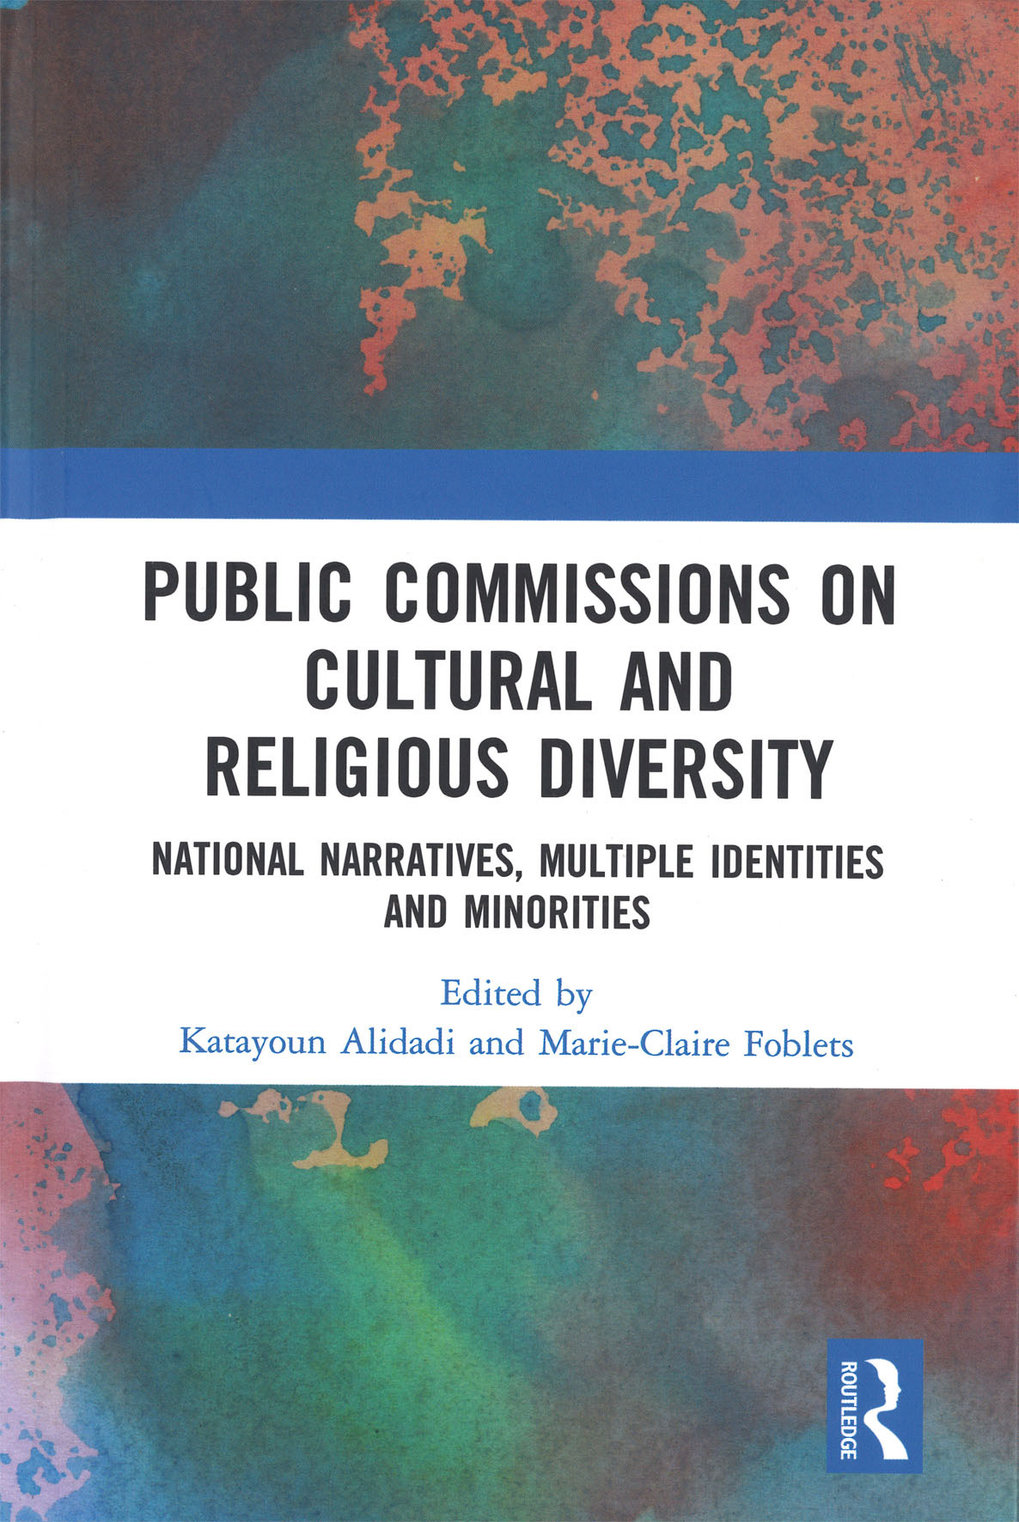 Public commissions on cultural and religious diversity: national narratives, multiple identities and minorities